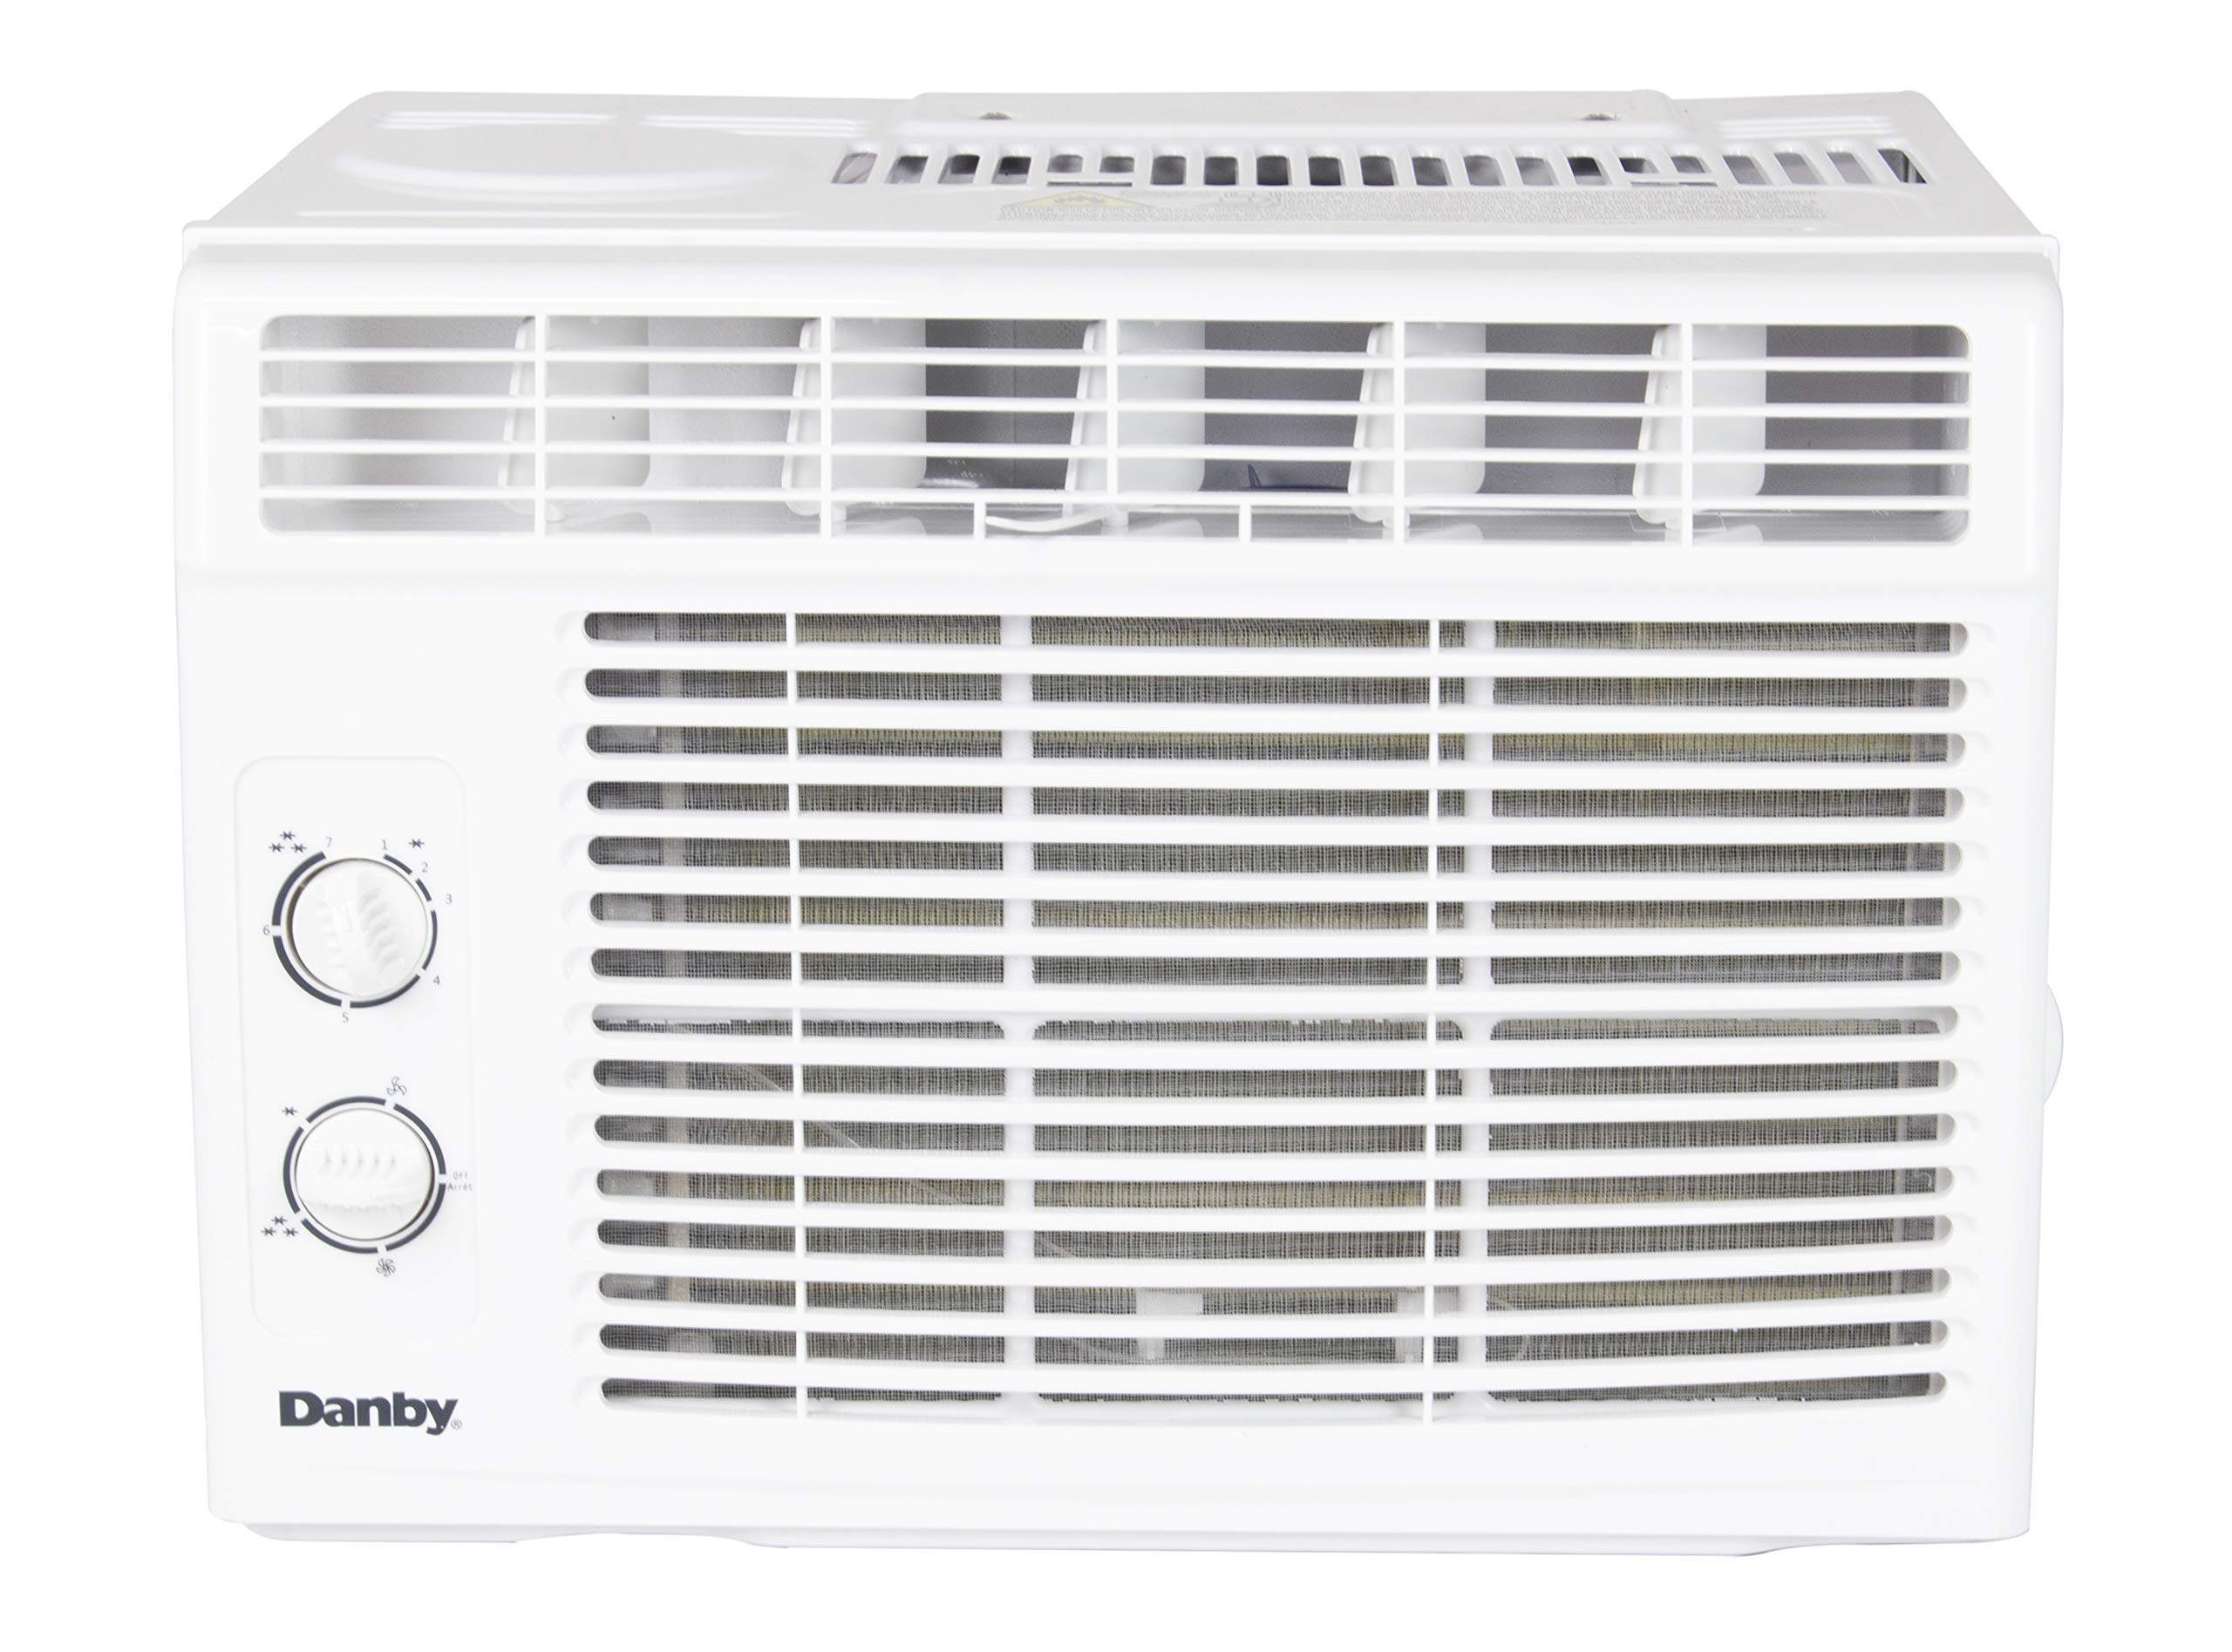 Danby 5,000 BTU Window Air Conditioner with two way air direction, White DAC050MB1WDB by Danby